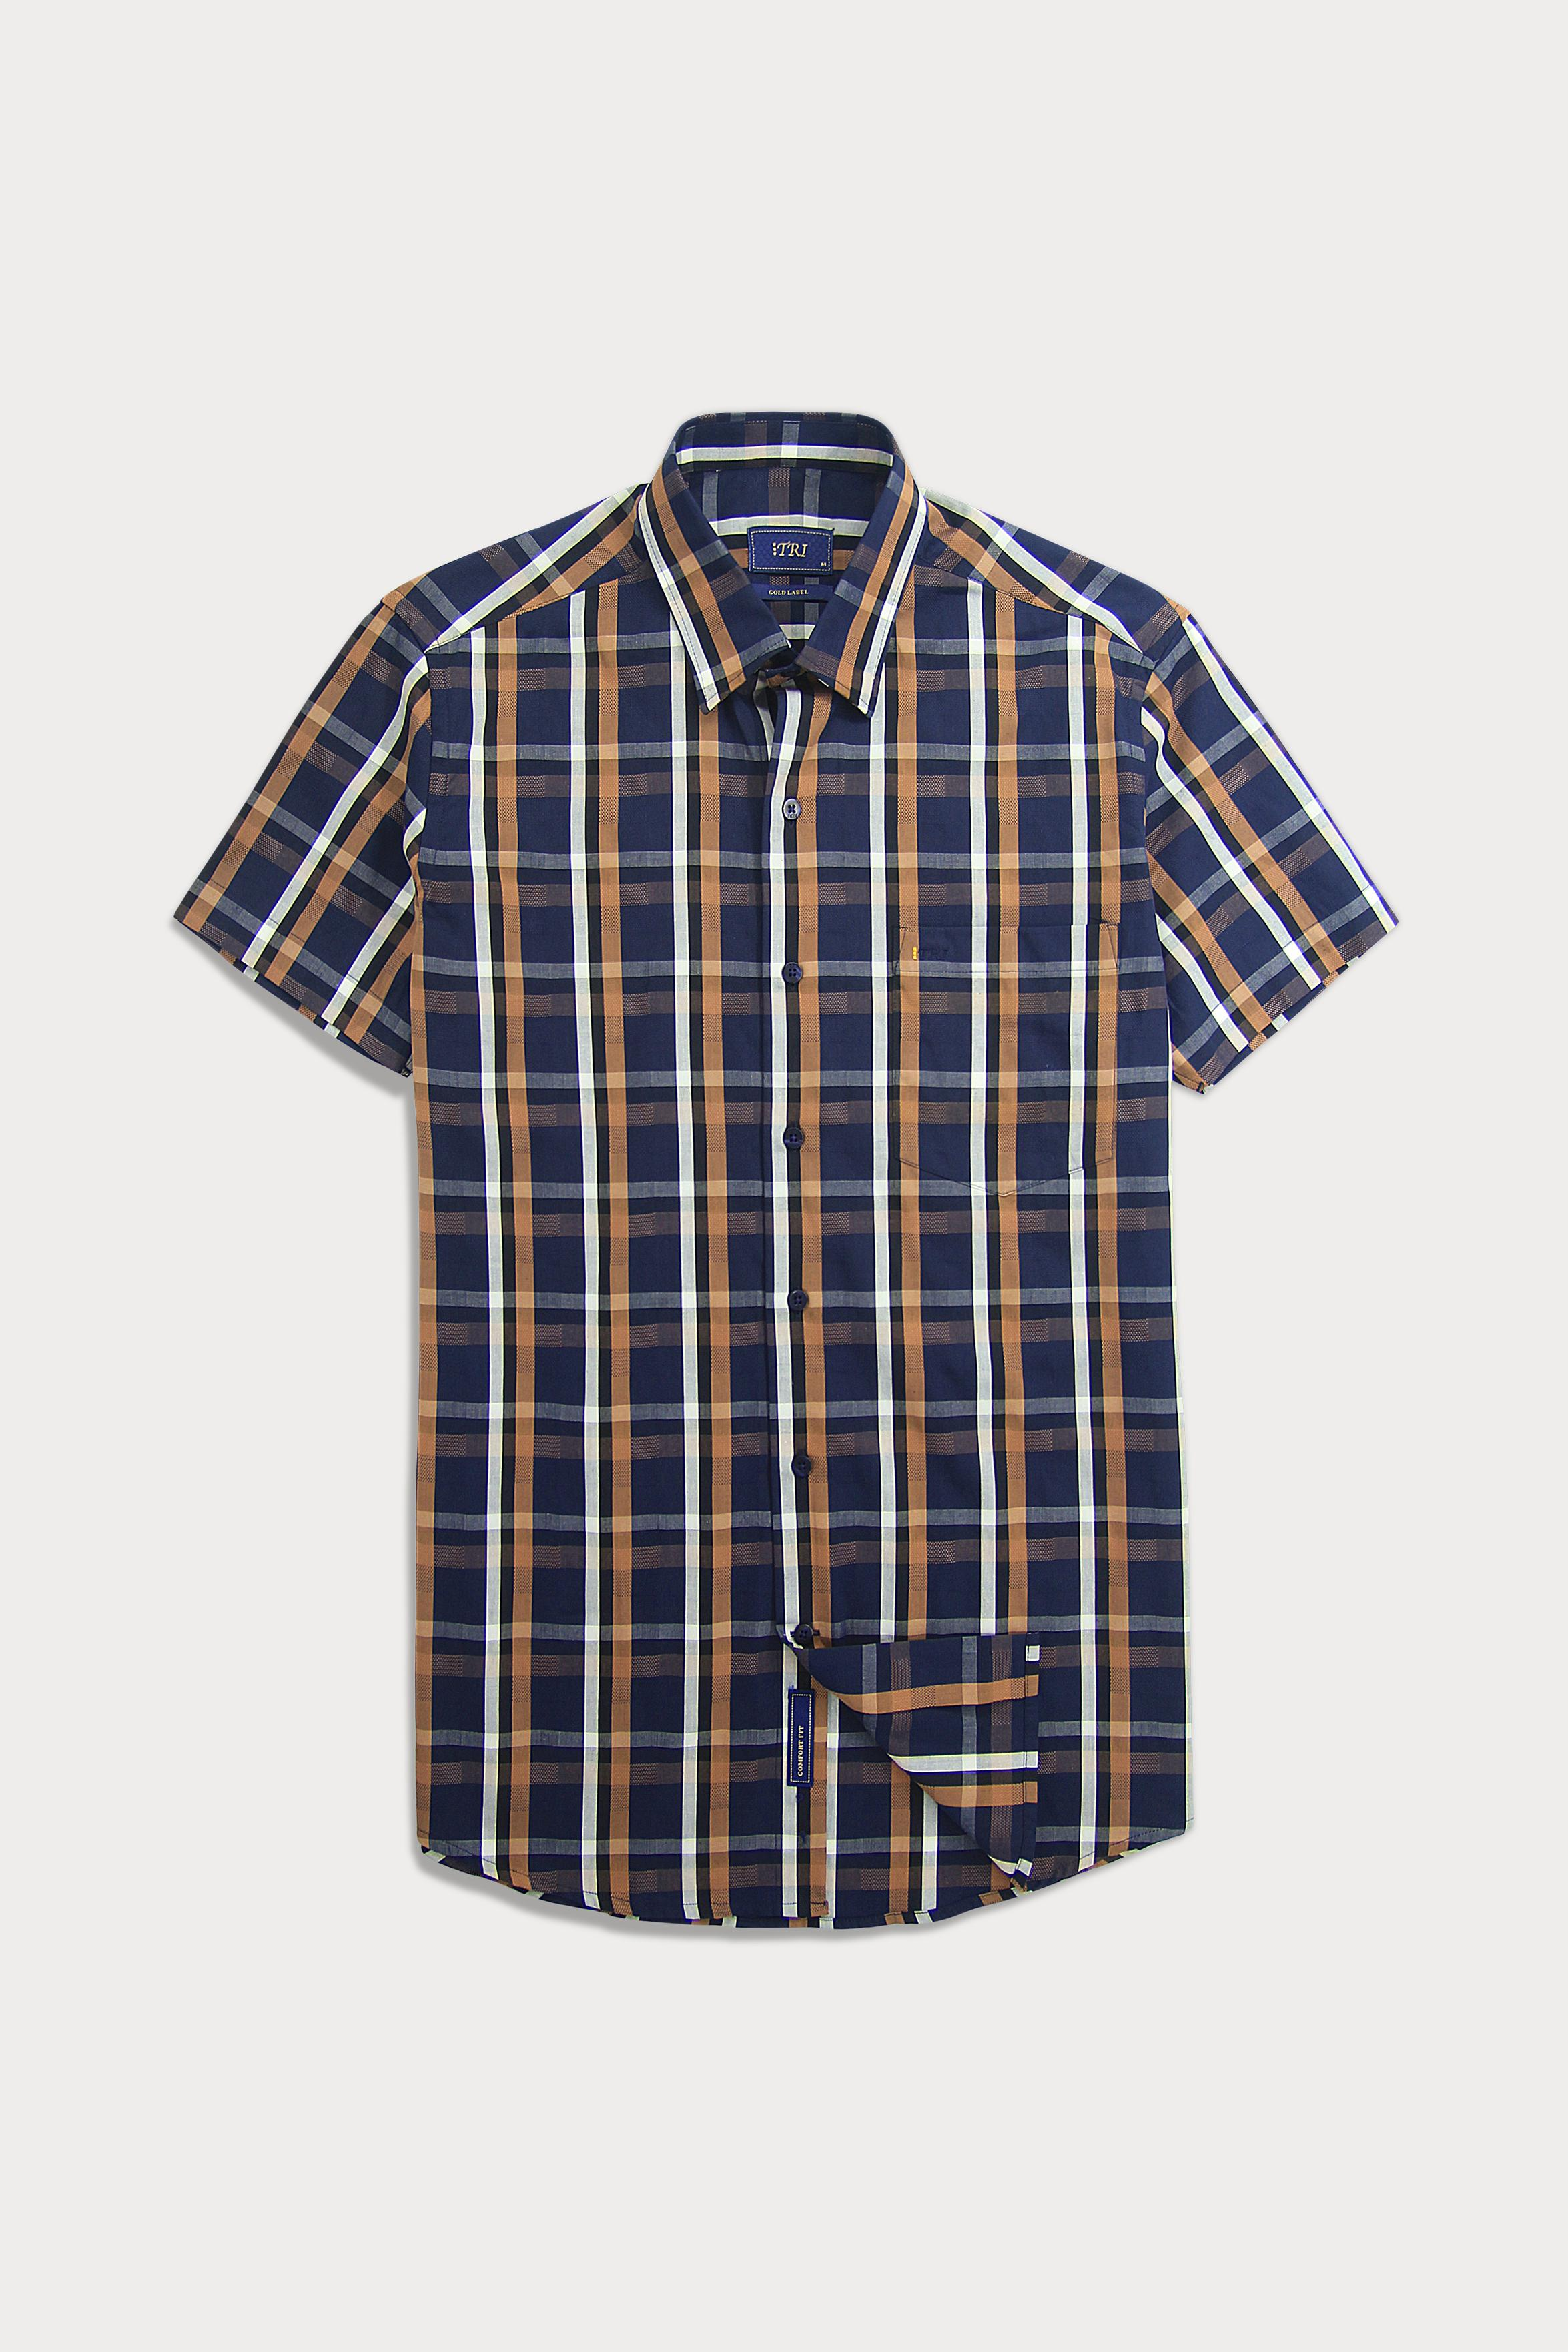 TRI GOLD LABEL SHIRT SG-87A